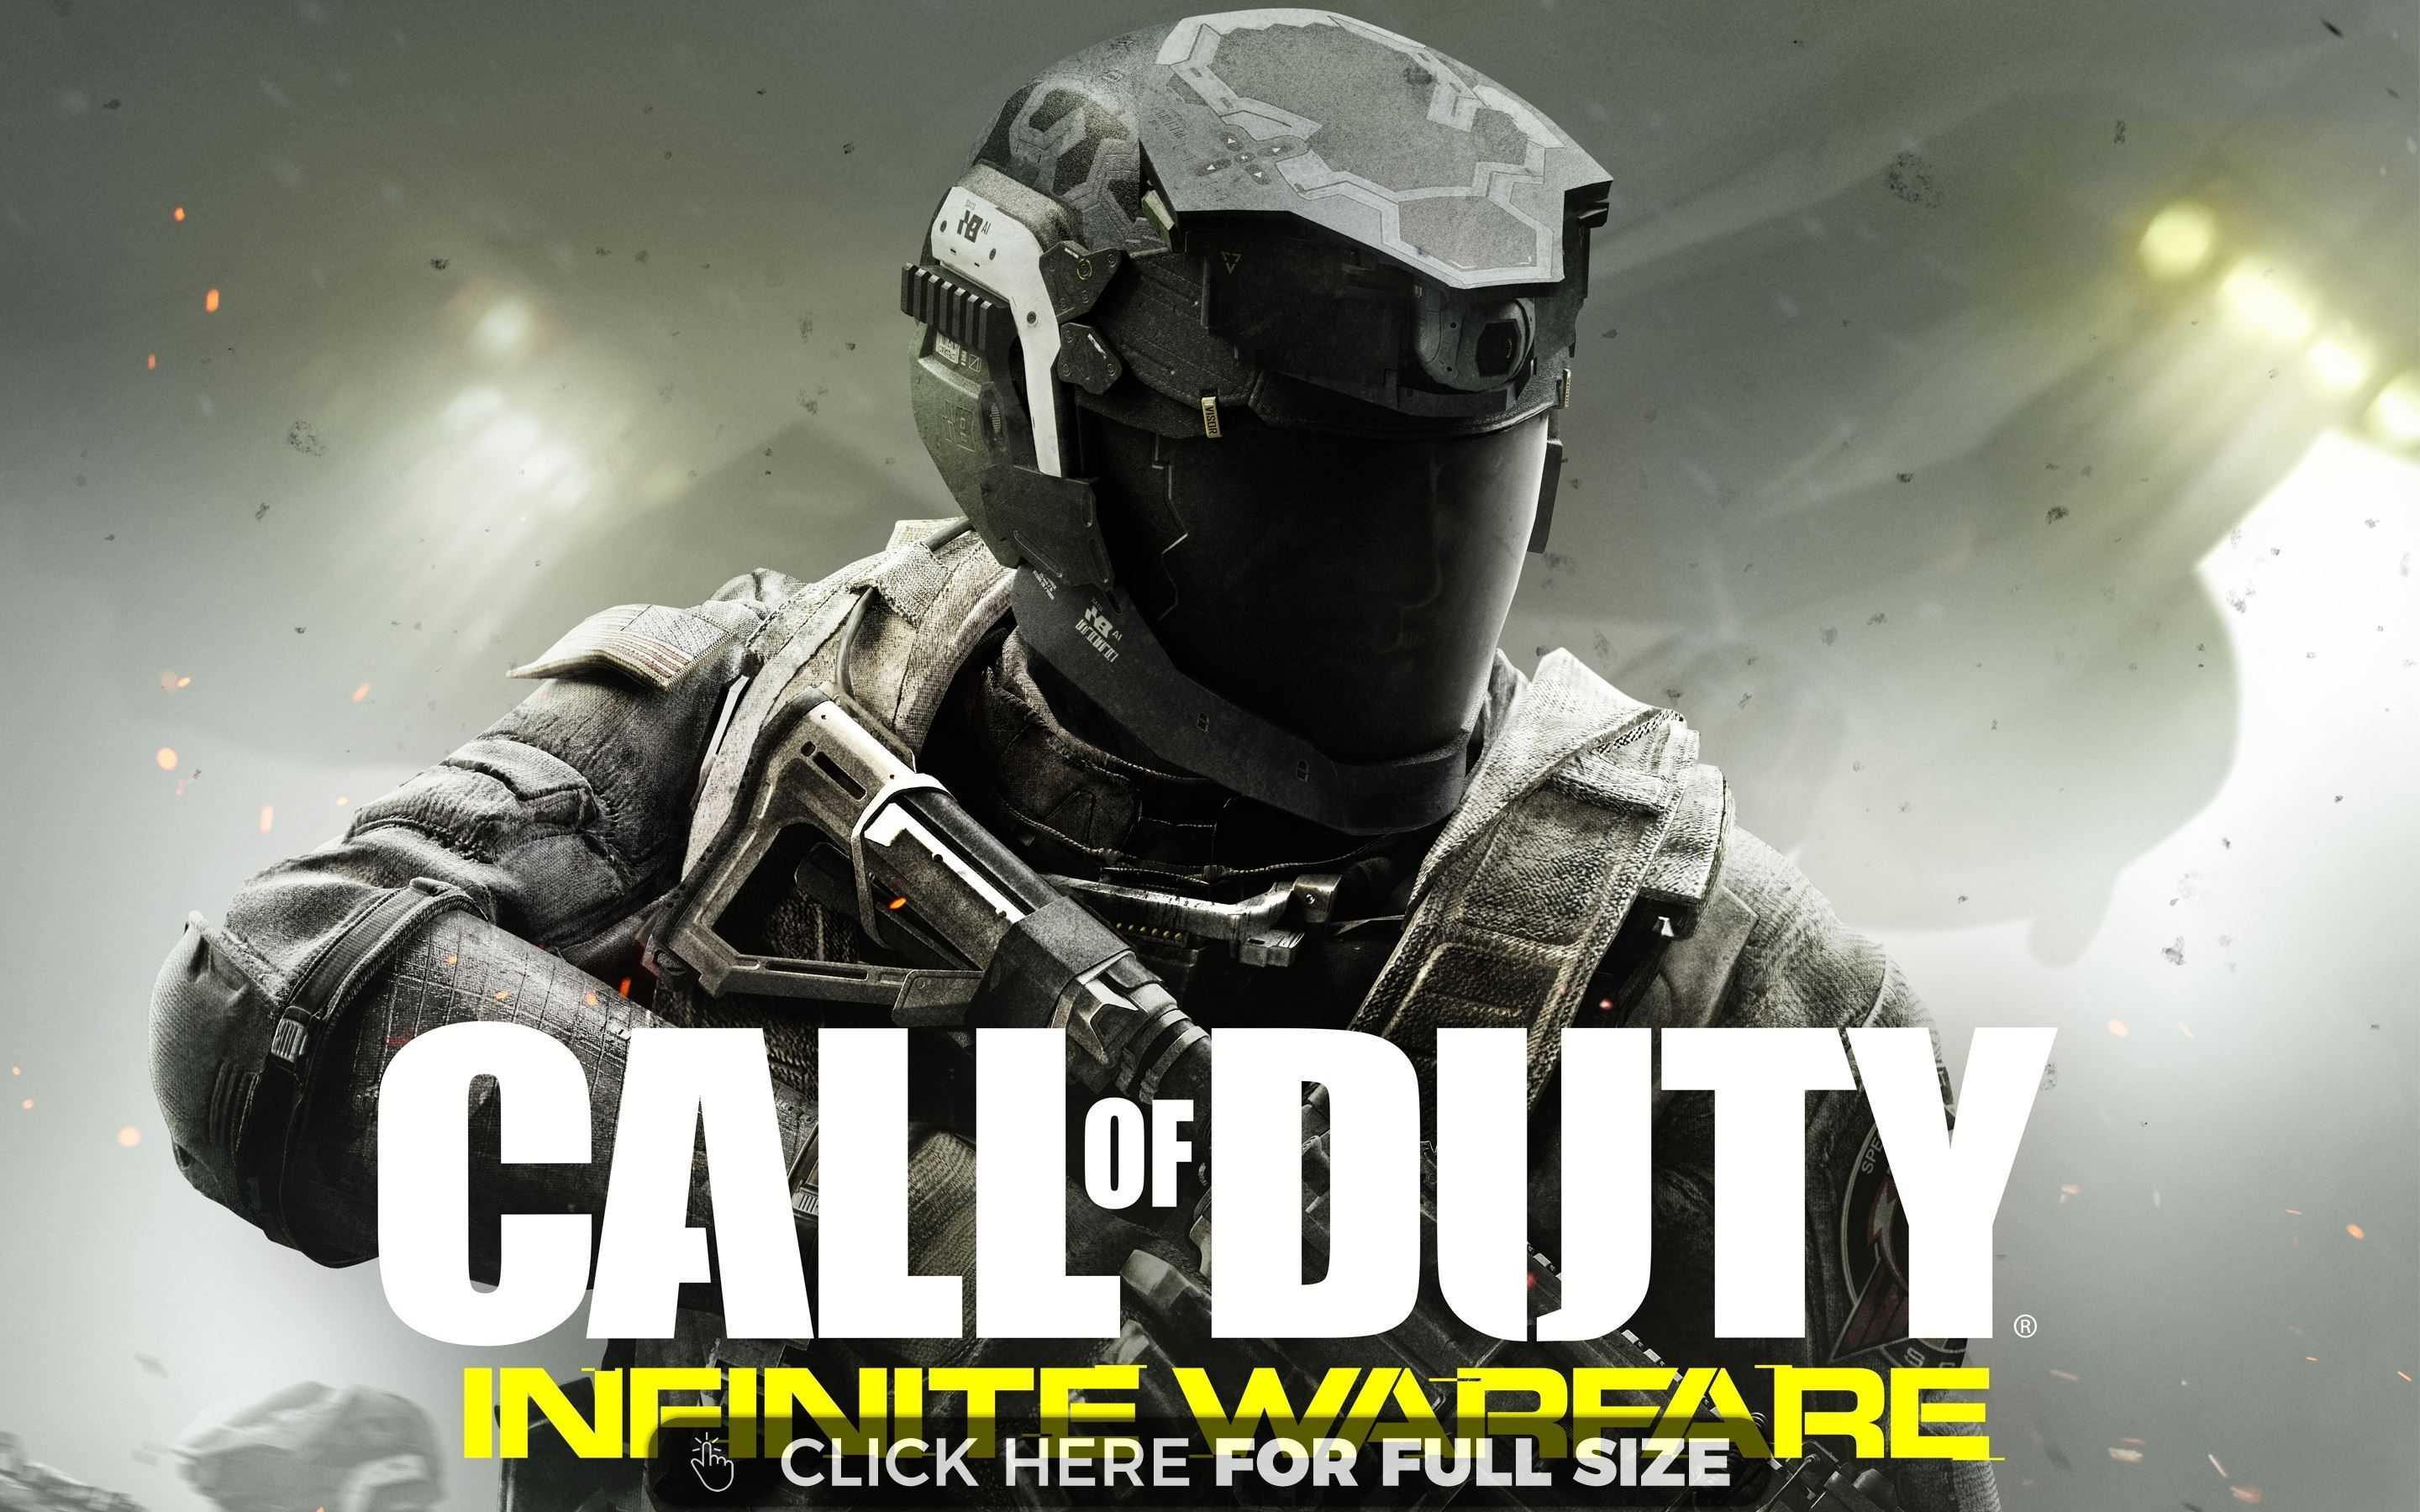 aa1676f1946d442e663a55edfd95a391 - How To Get Call Of Duty Infinite Warfare For Free